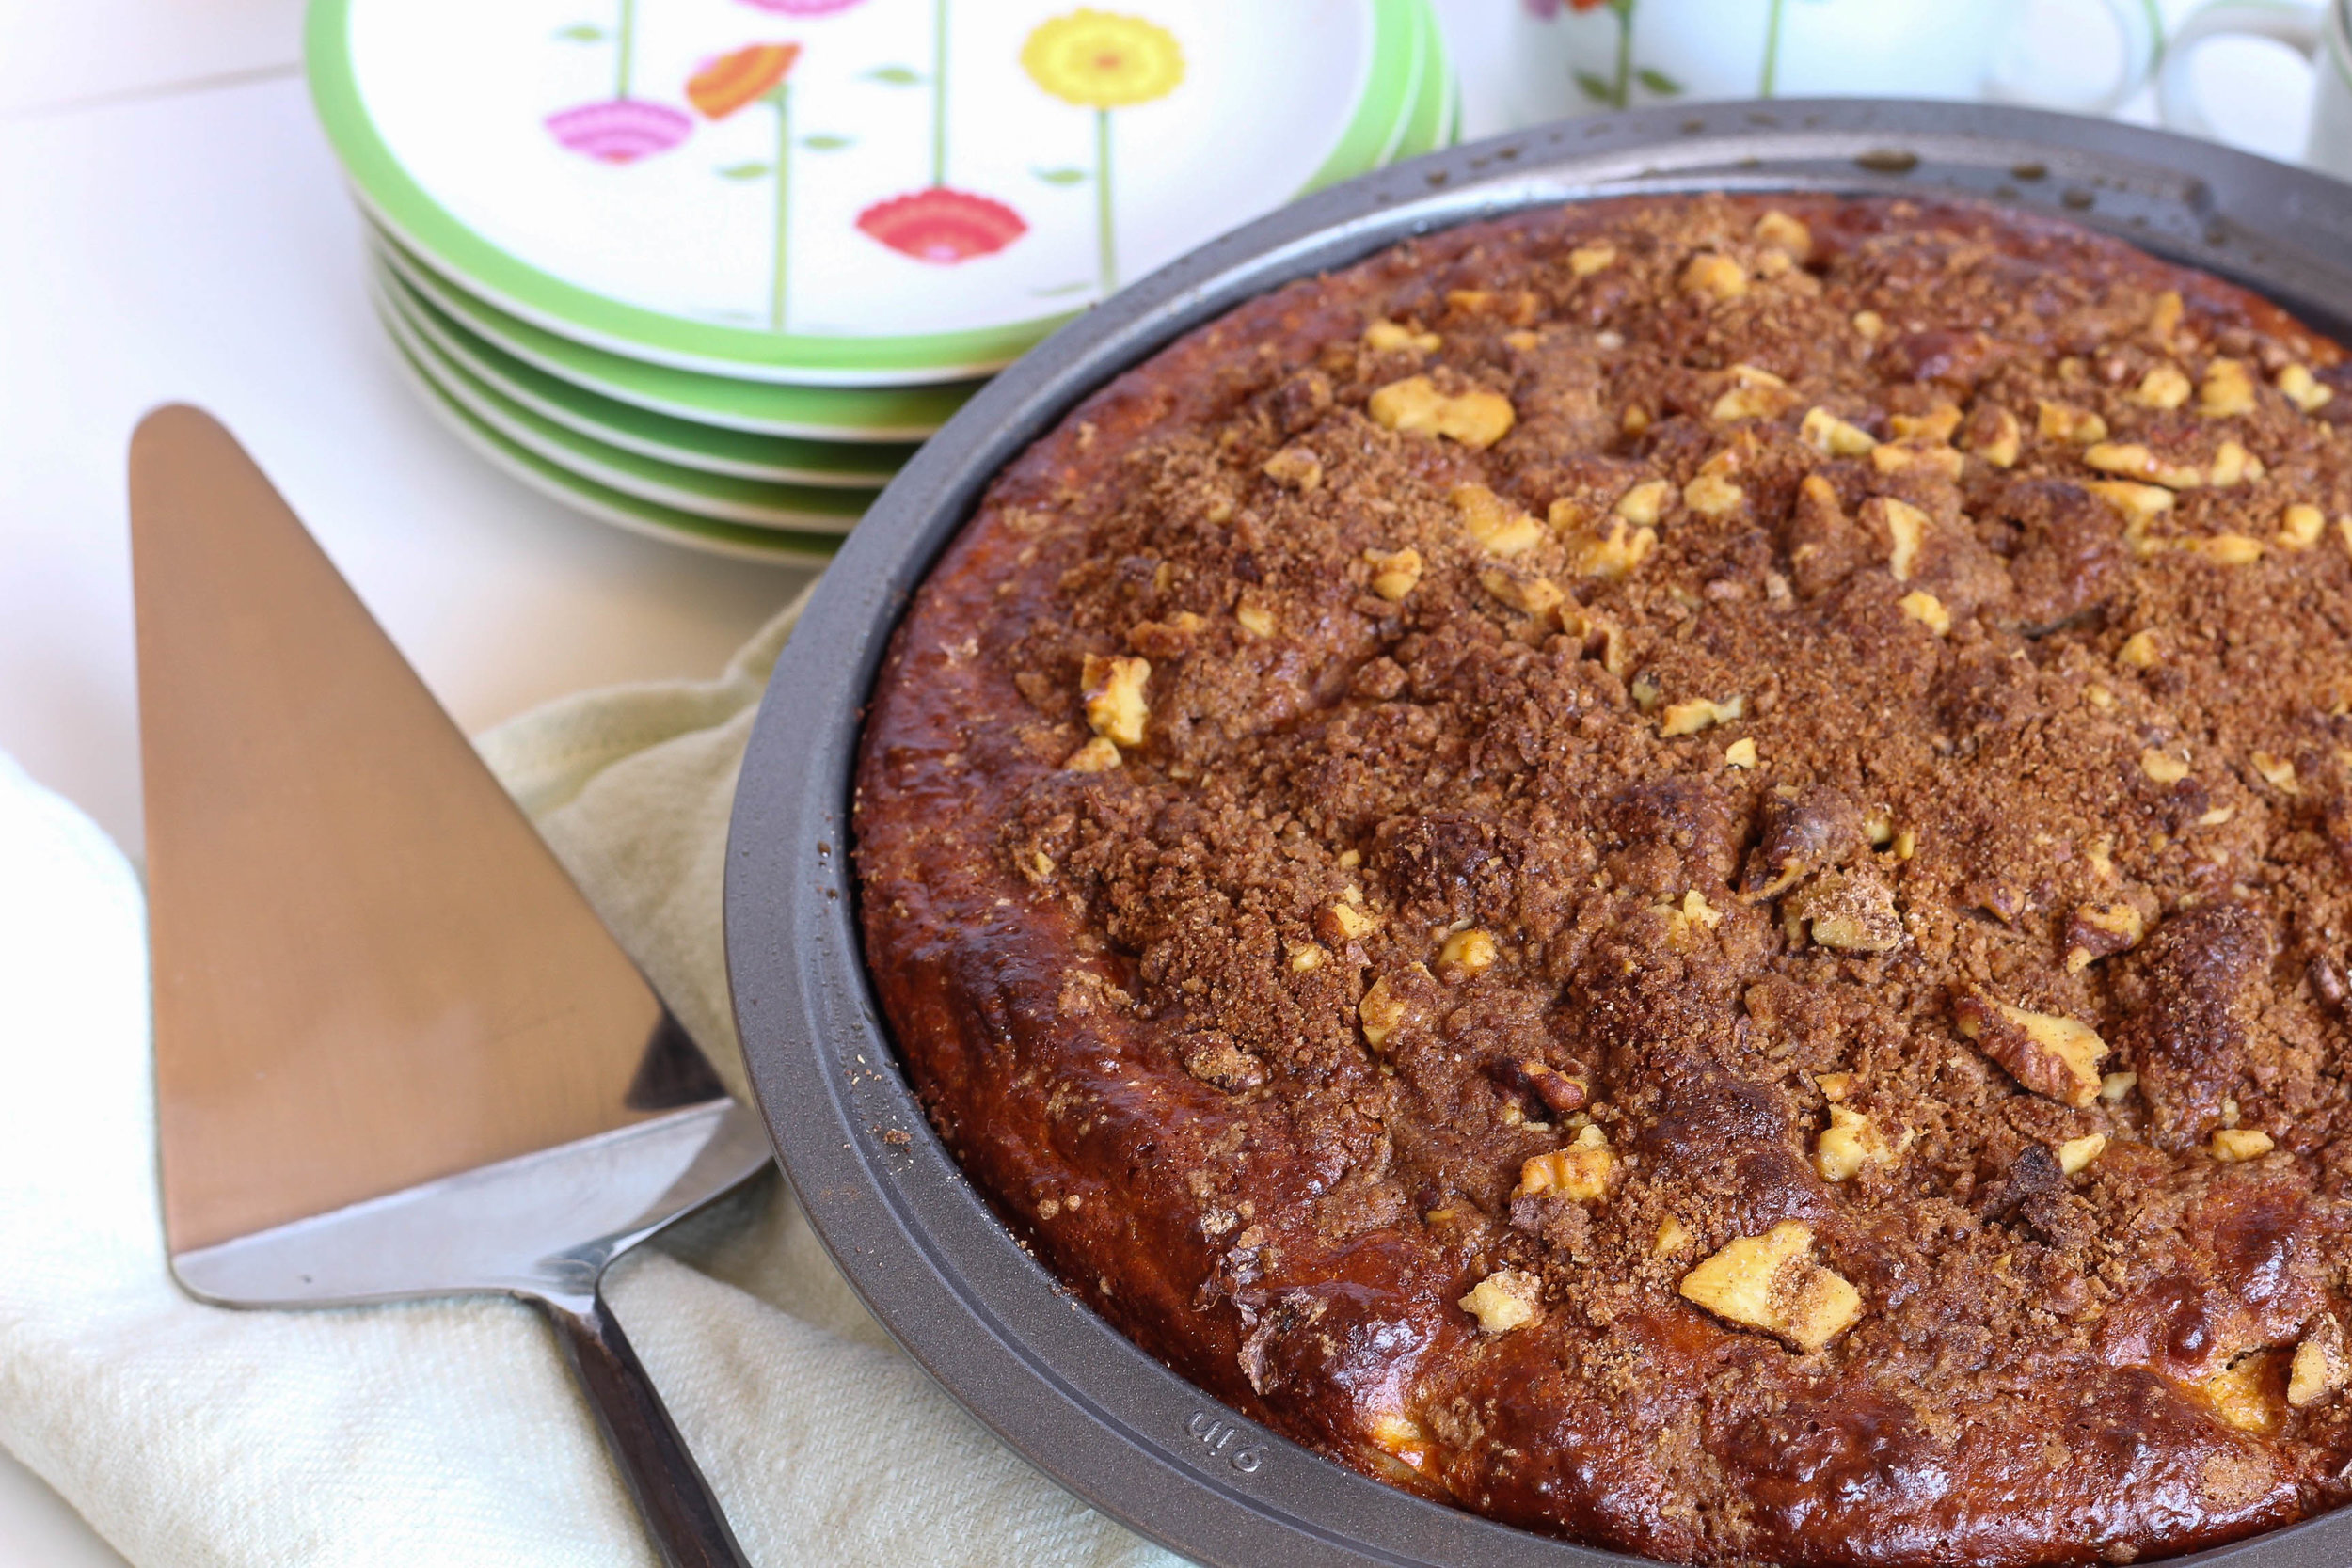 Apple Cinnamon Protein Coffee Cake | My Engineered Nutrition